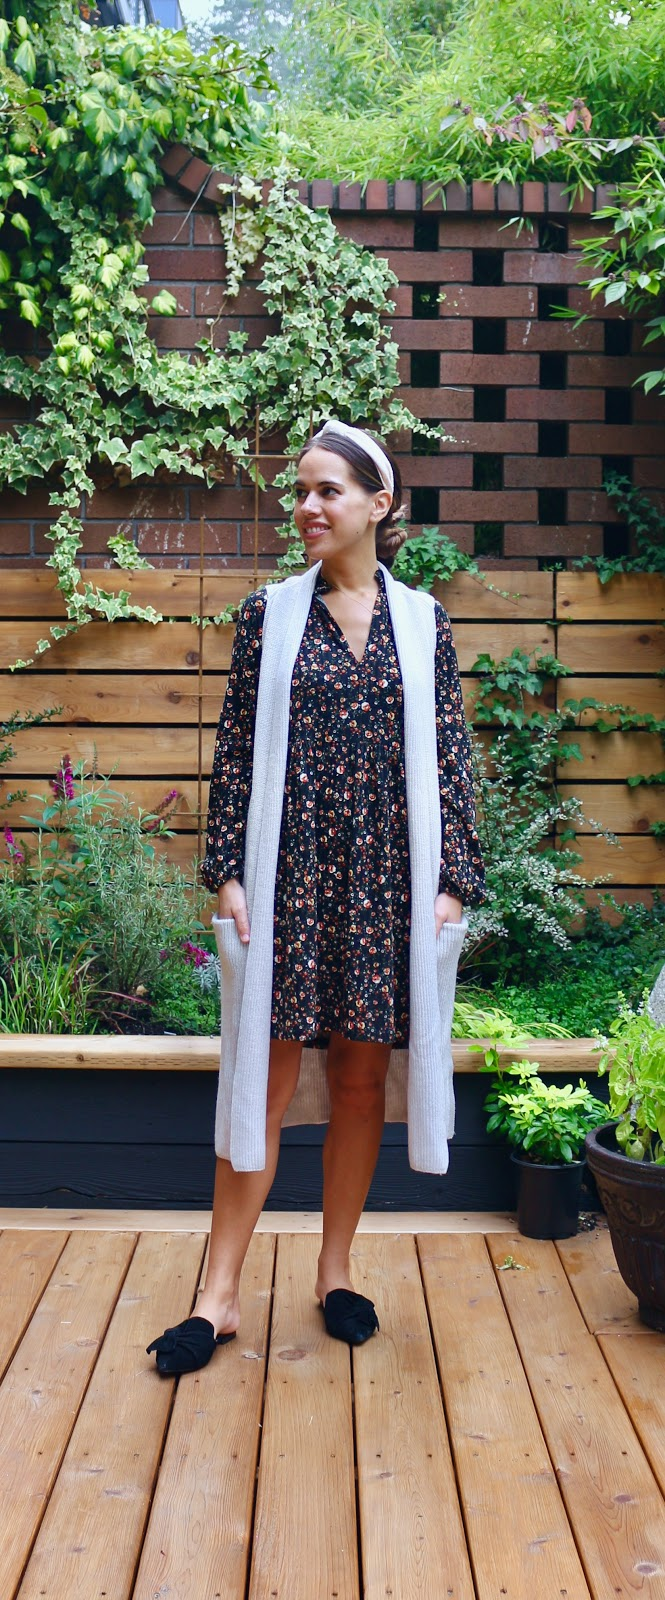 Jules in Flats - Fall Long Sleeve Mini Dress with Duster Vest (Business Casual Workwear on a Budget)